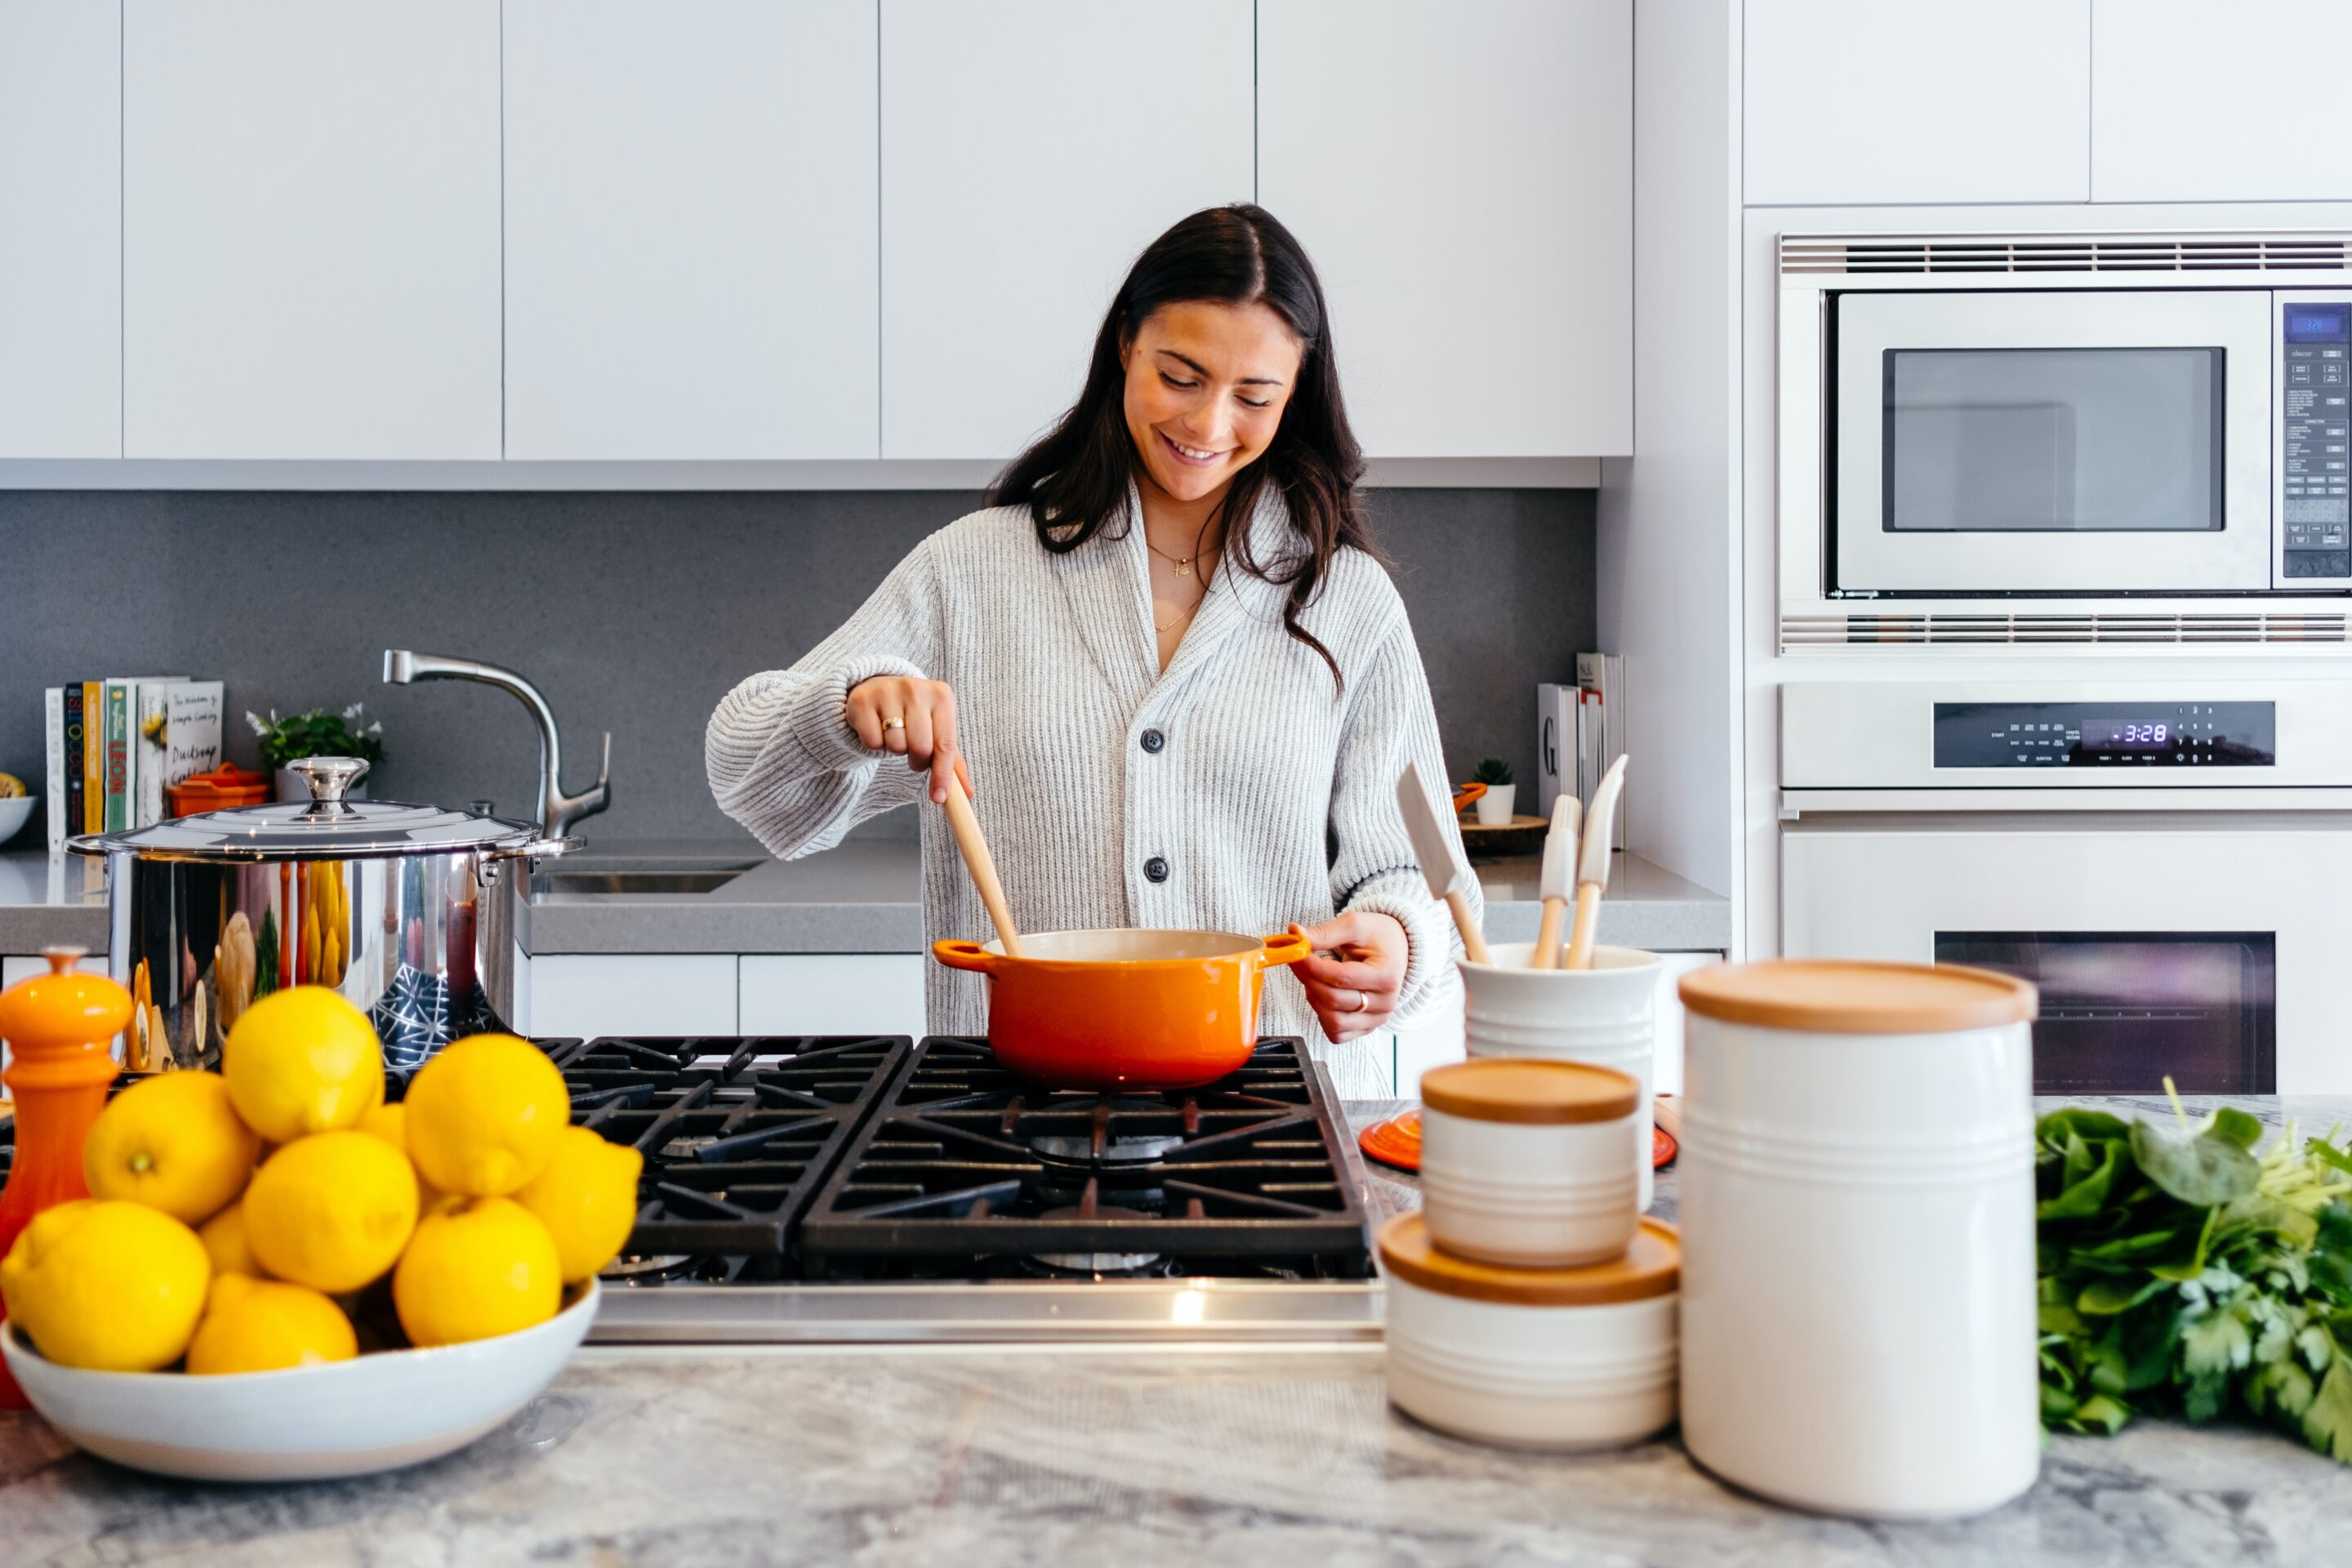 woman cooking in the kitchen - meal prep and healthy eating